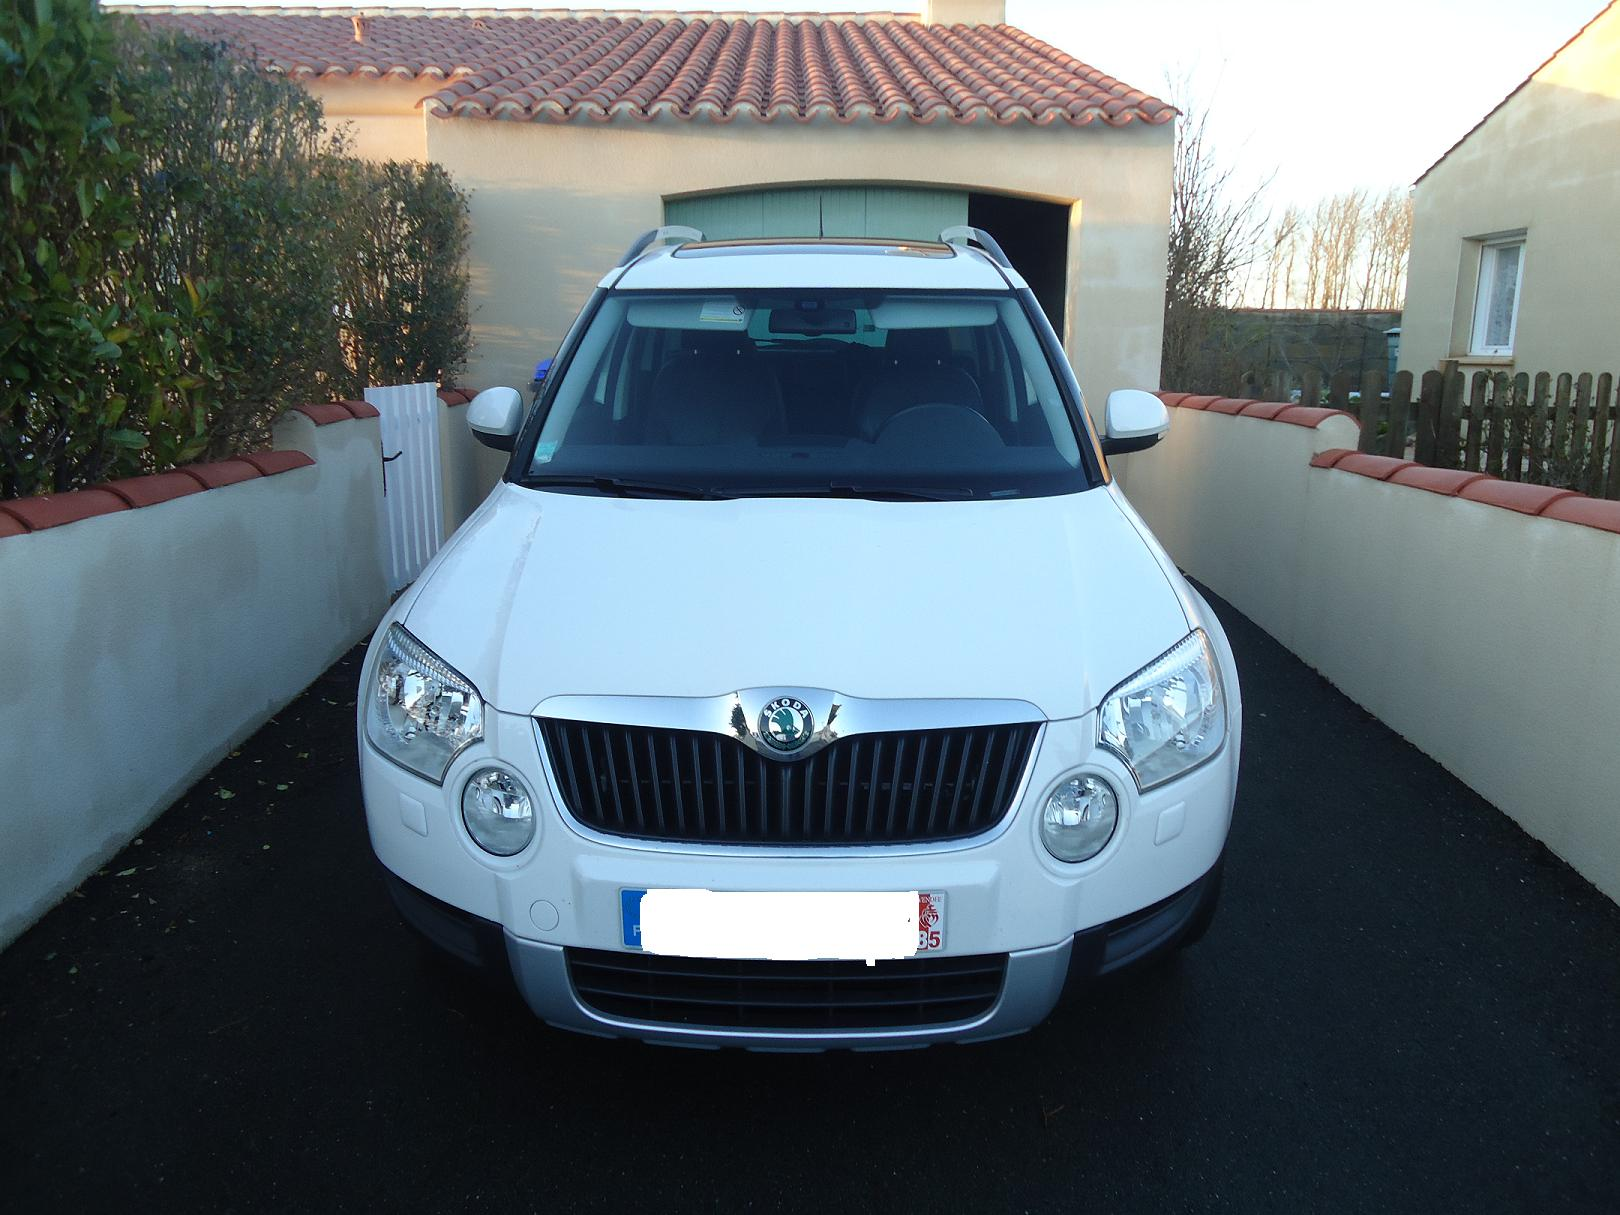 vends skoda yeti 2 0 1410 tdi 4x4 yeti skoda forum marques. Black Bedroom Furniture Sets. Home Design Ideas